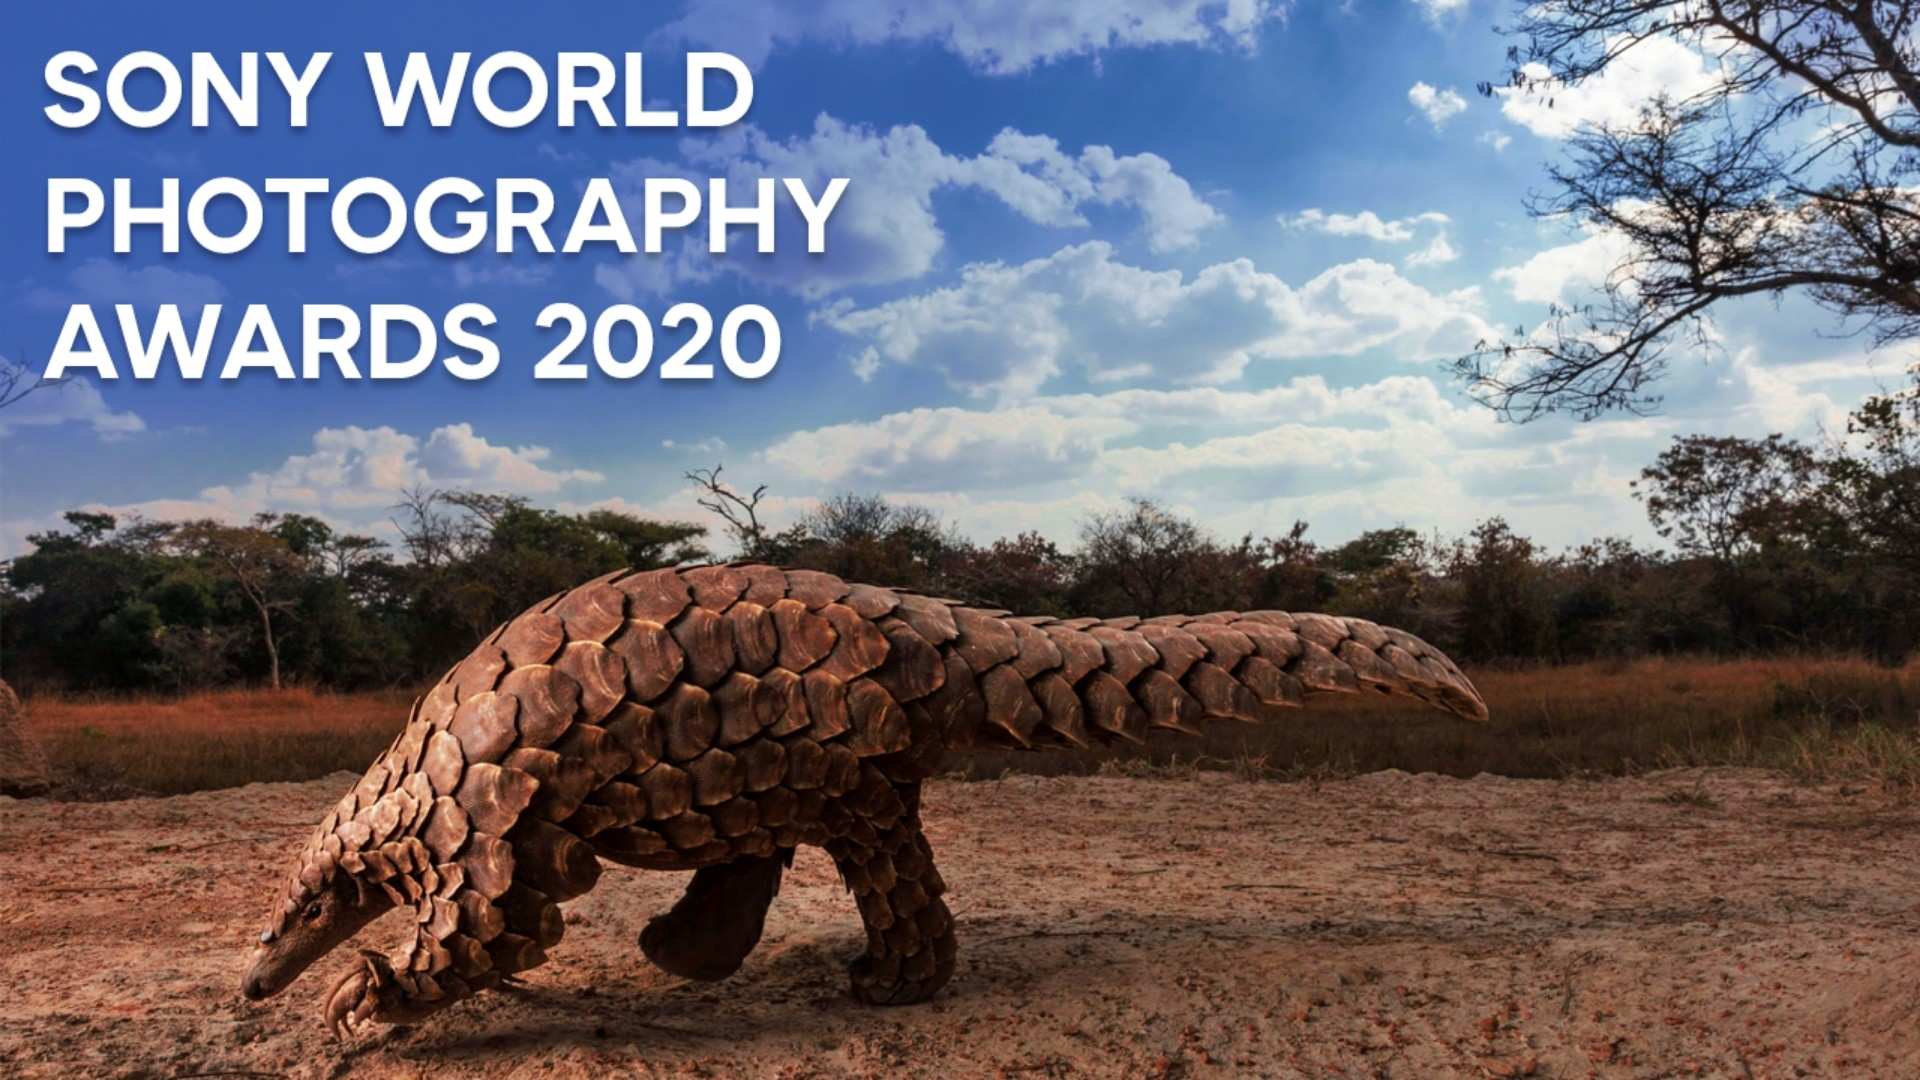 10 лучших работ Sony World Photography Awards 2020